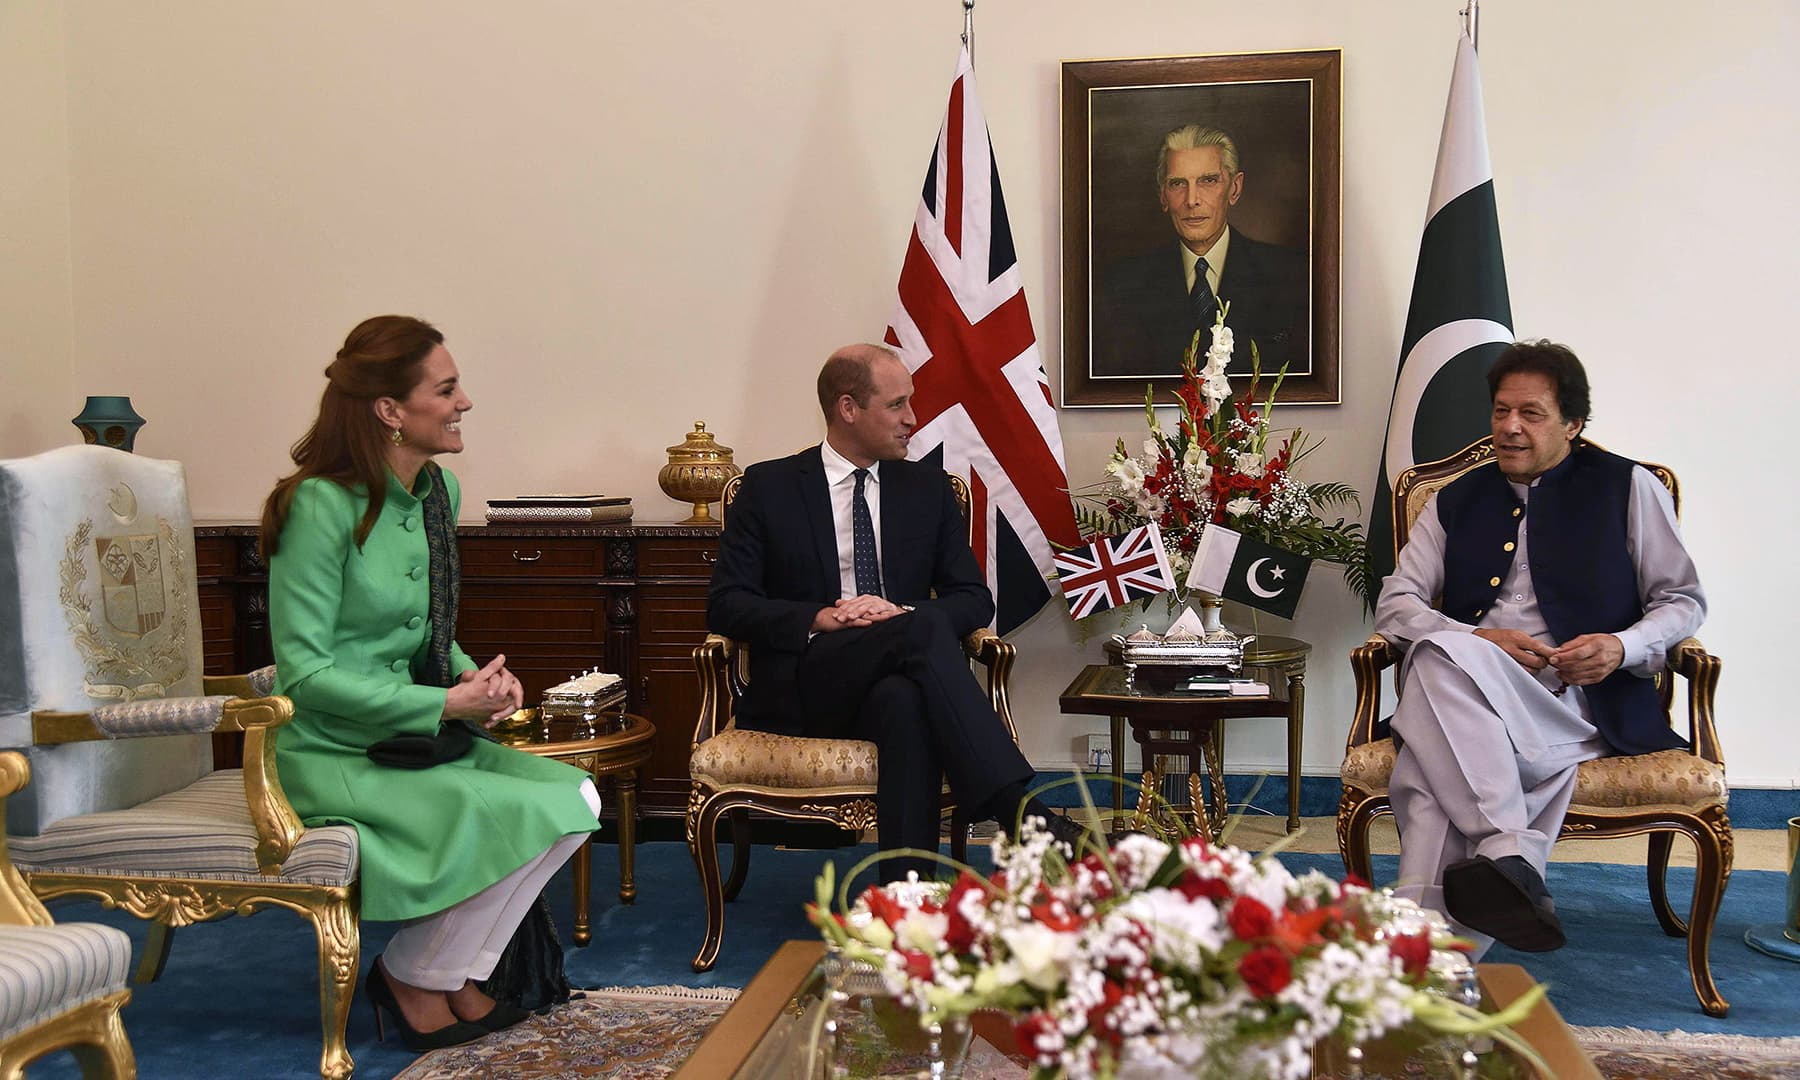 Prime Minister Imran Khan (R) meets with Britain's Prince William (C), Duke of Cambridge, and his wife Catherine (L), Duchess of Cambridge, at the Prime Minister House in Islamabad on October 15. — AFP